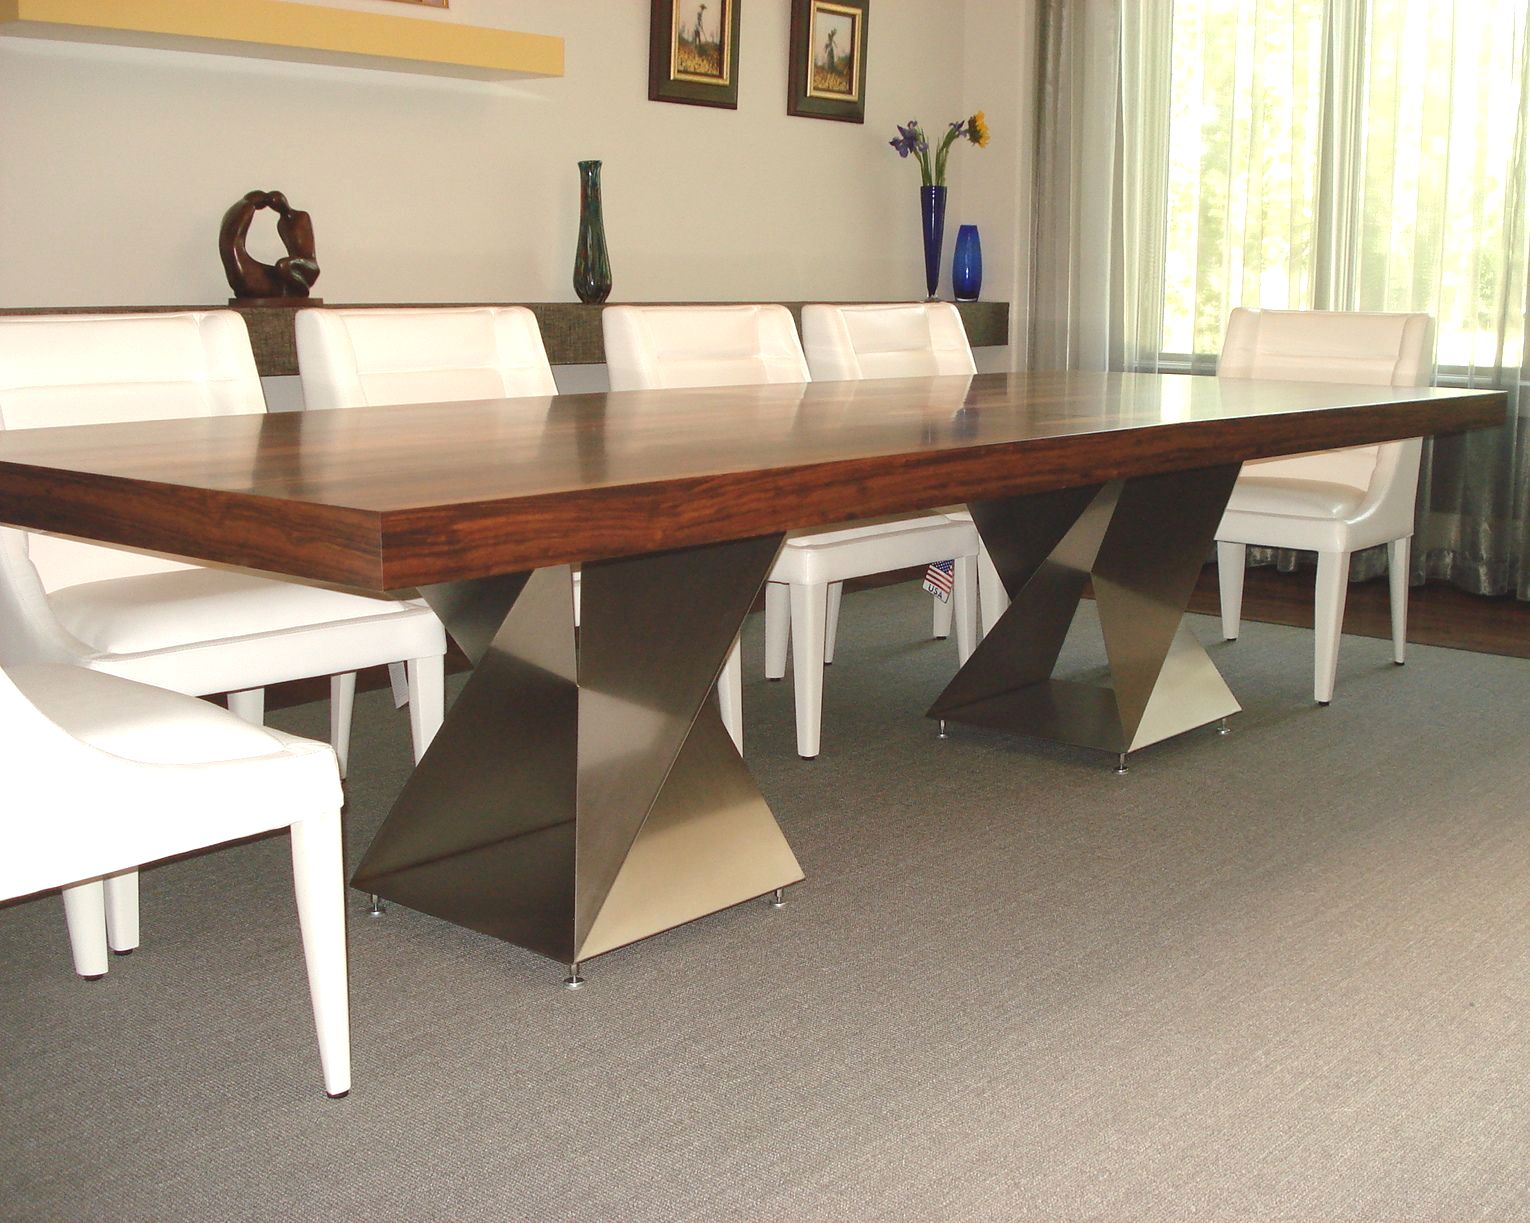 Nice Stainless Steel Table Bases. $ 459.00 ...